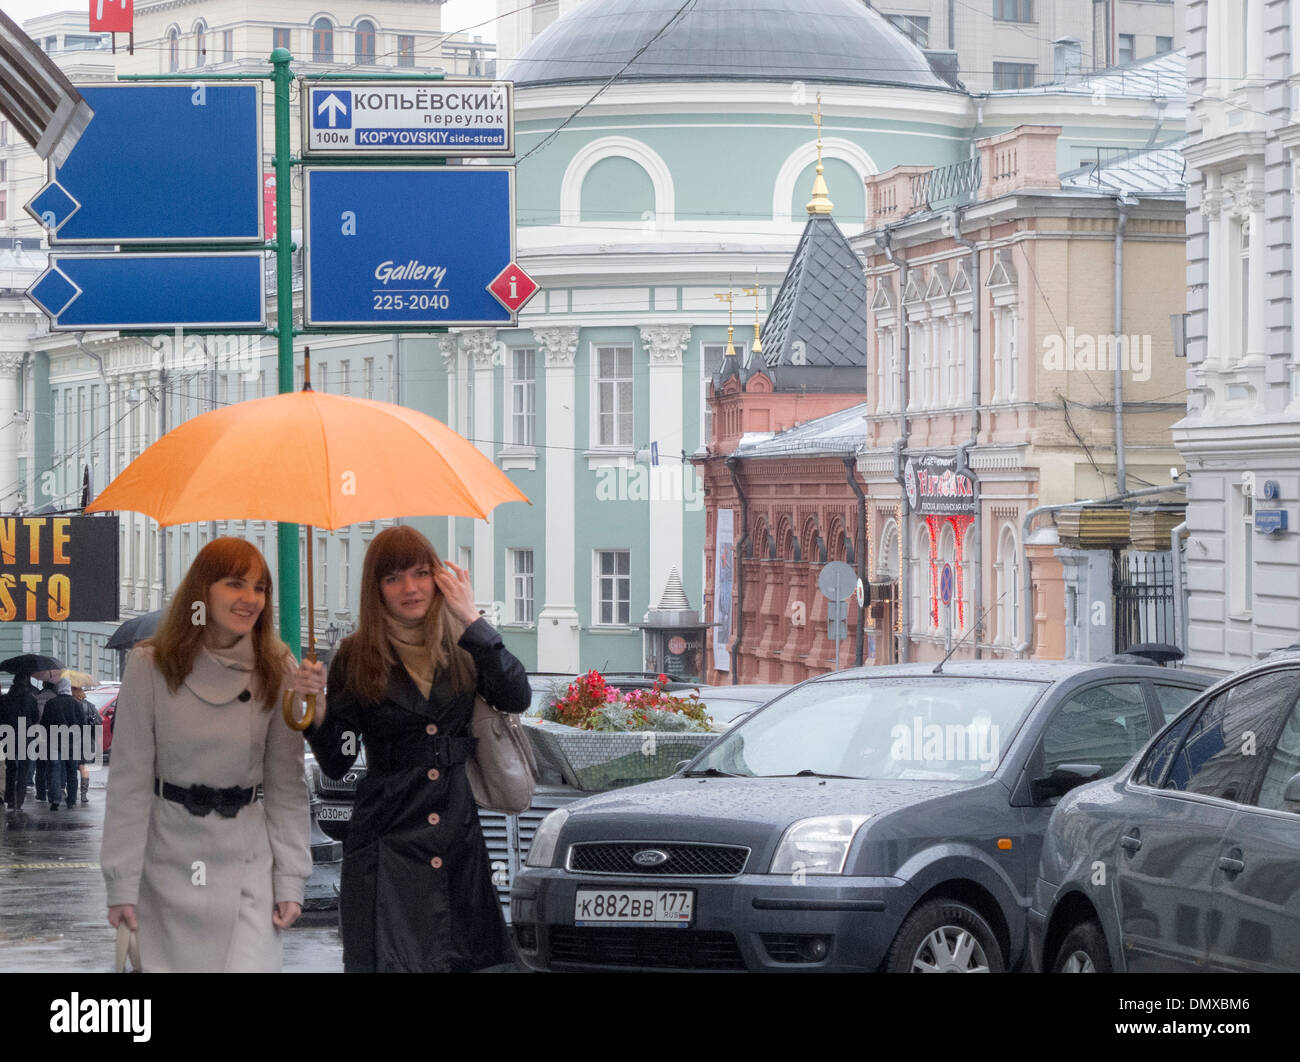 Two young ladies walk sheltered from the rain in Moscow with an orange umbrella. - Stock Image